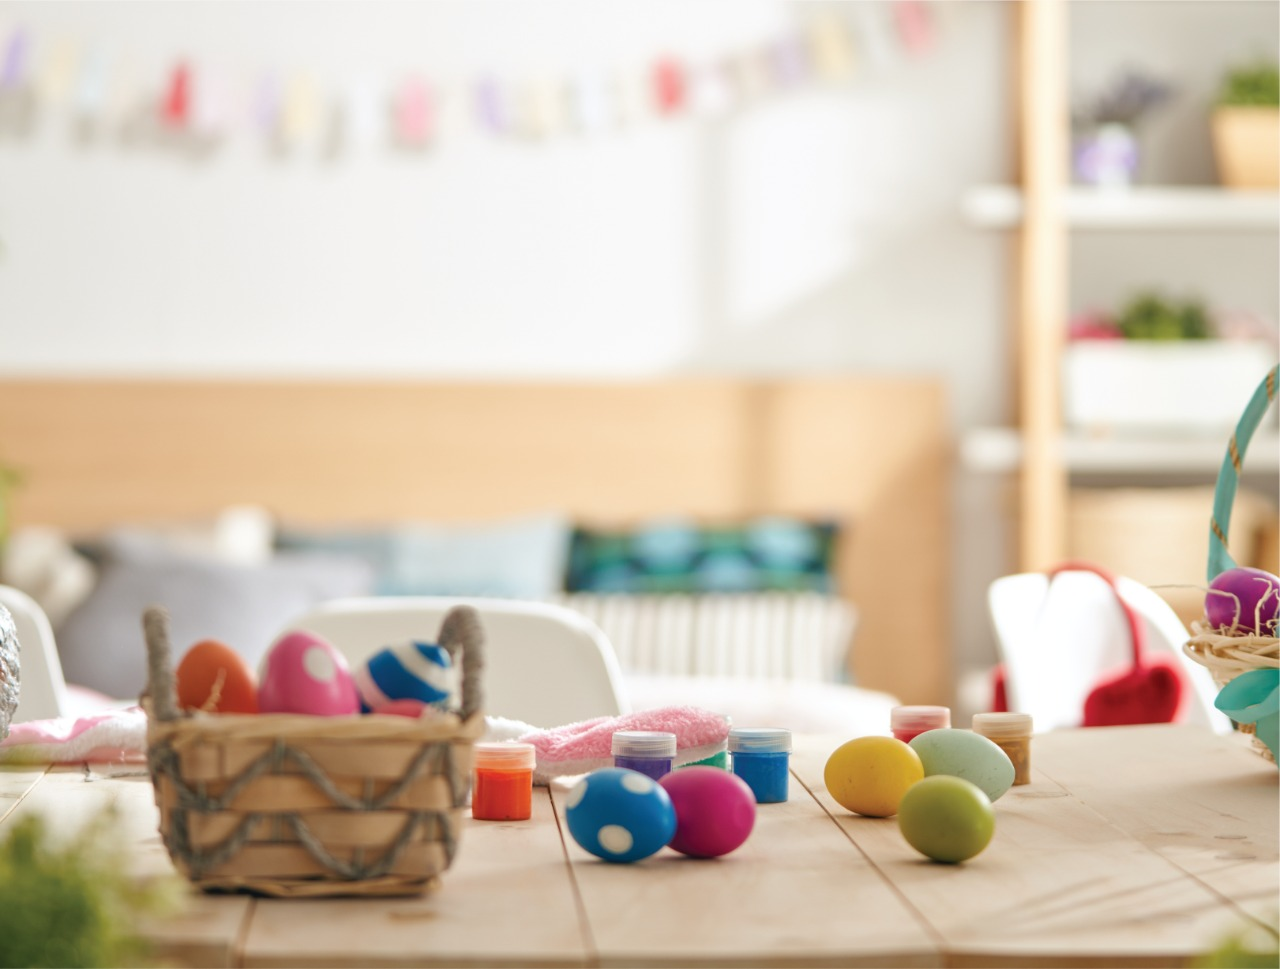 Allsopp and Allsopp Have an Indoor Easter Egg Hunt